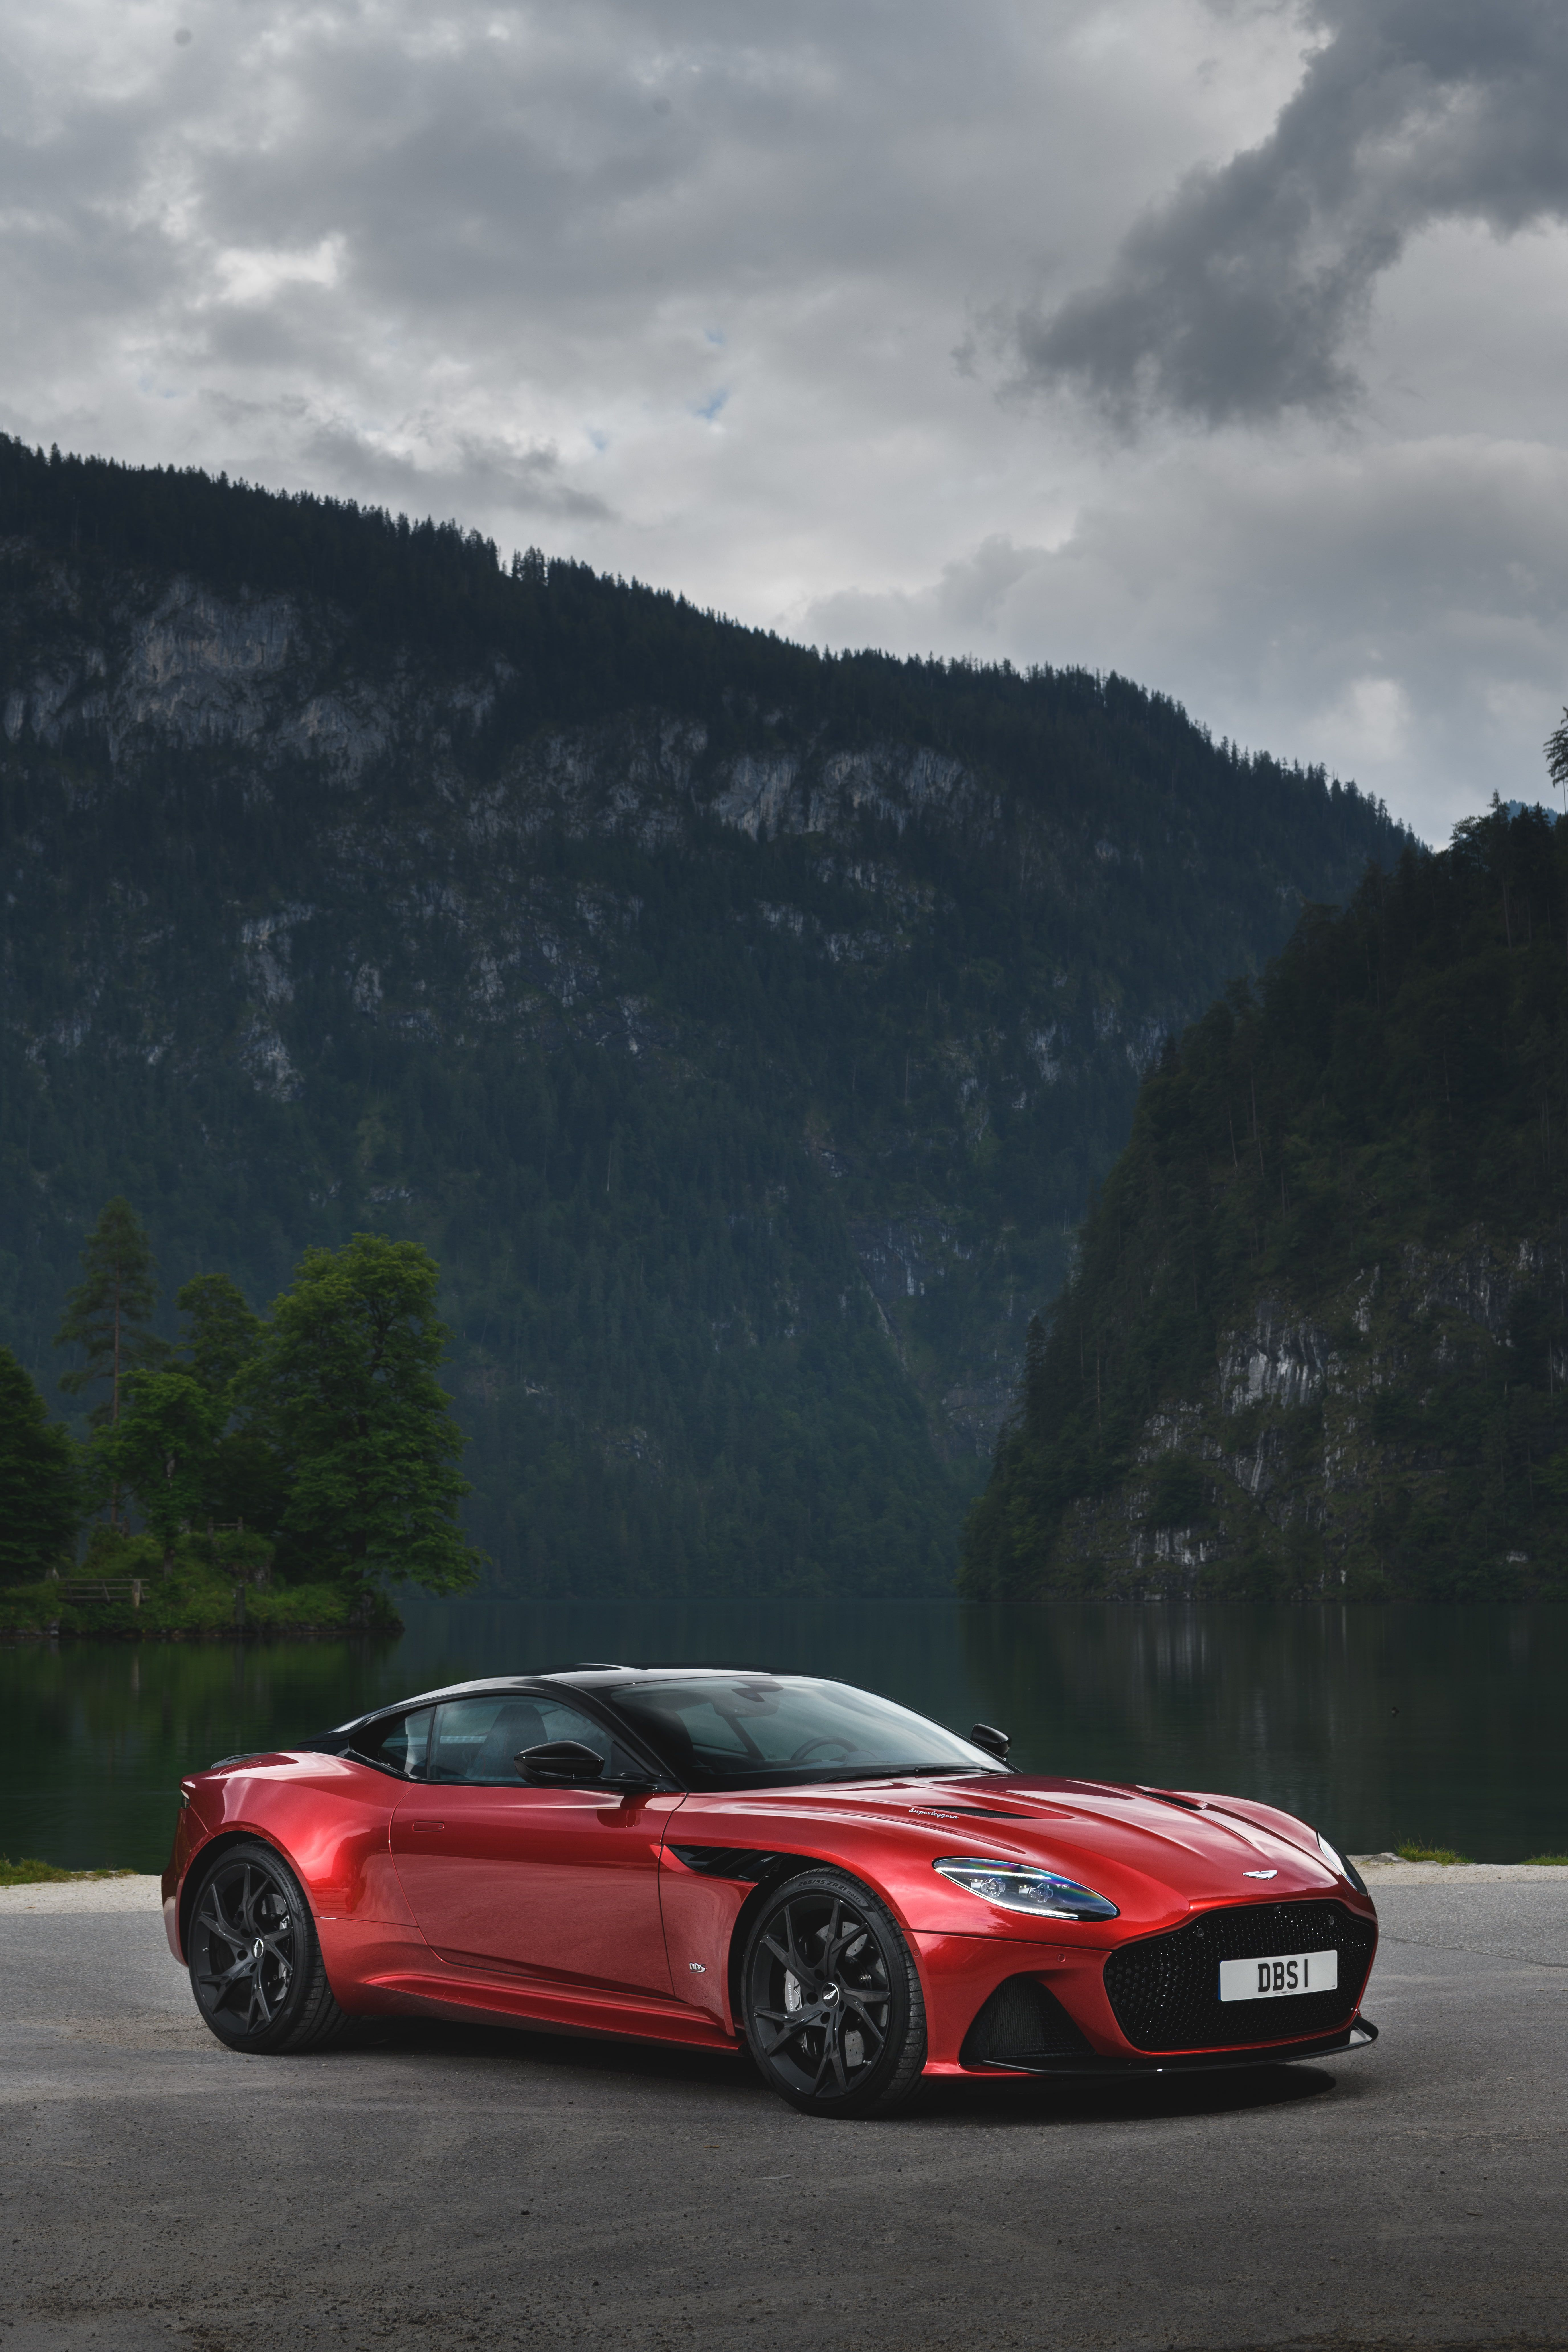 Car Sports Car Supercars Aston Martin Aston Martin Dbs